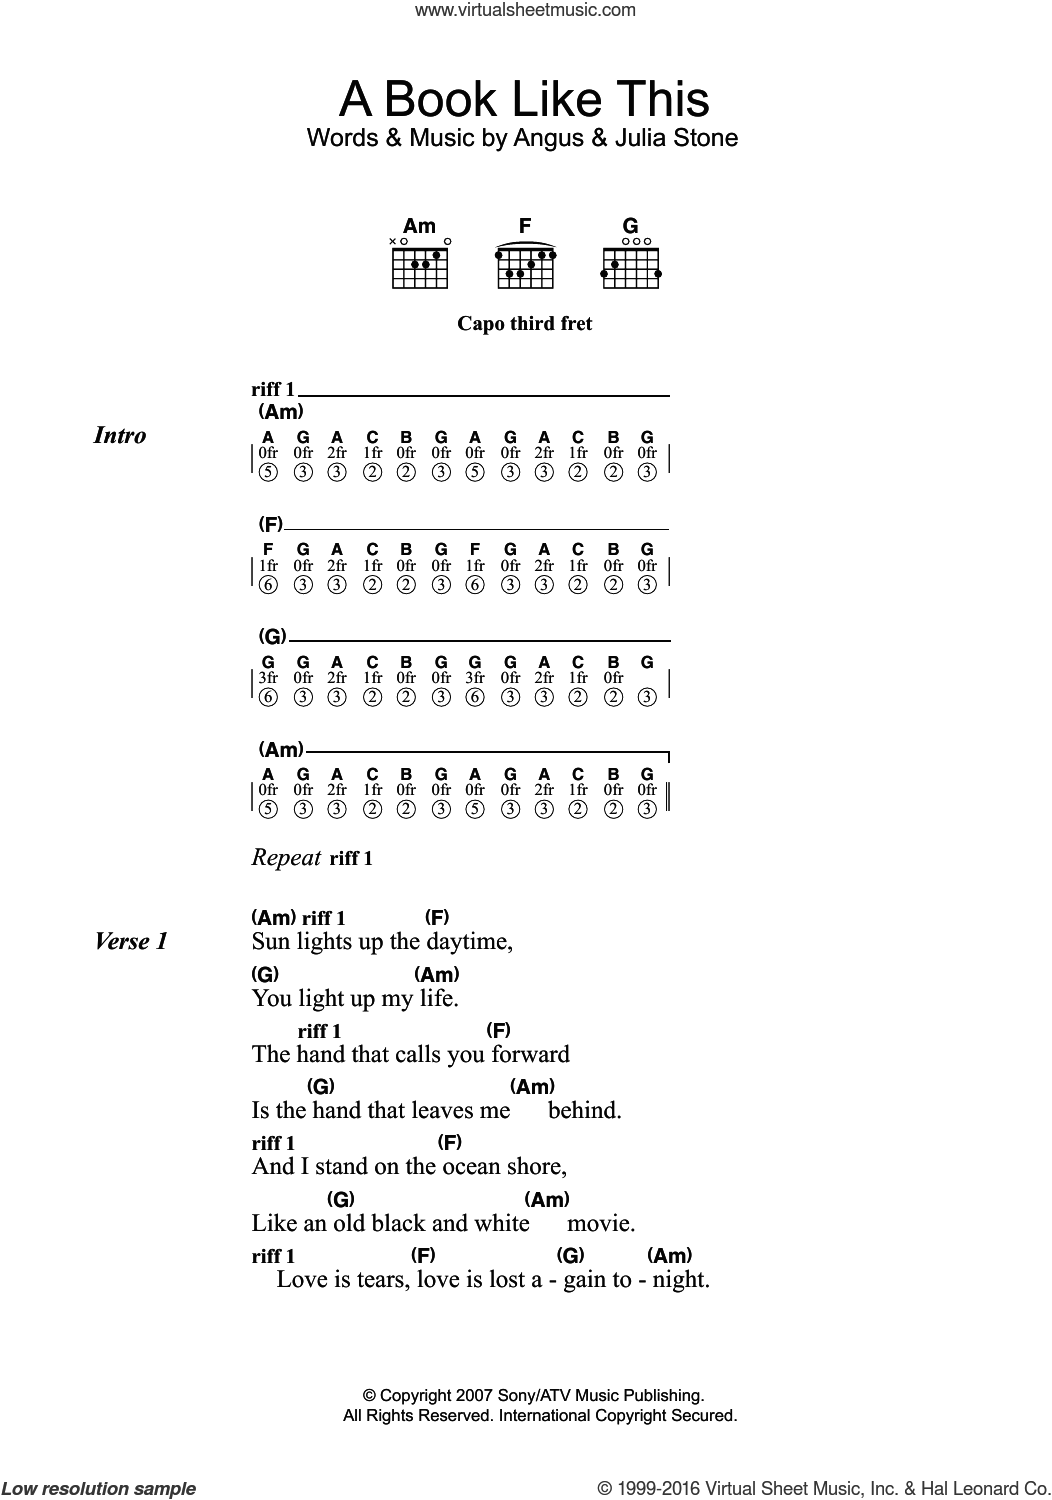 Stone A Book Like This Sheet Music For Guitar Chords Pdf